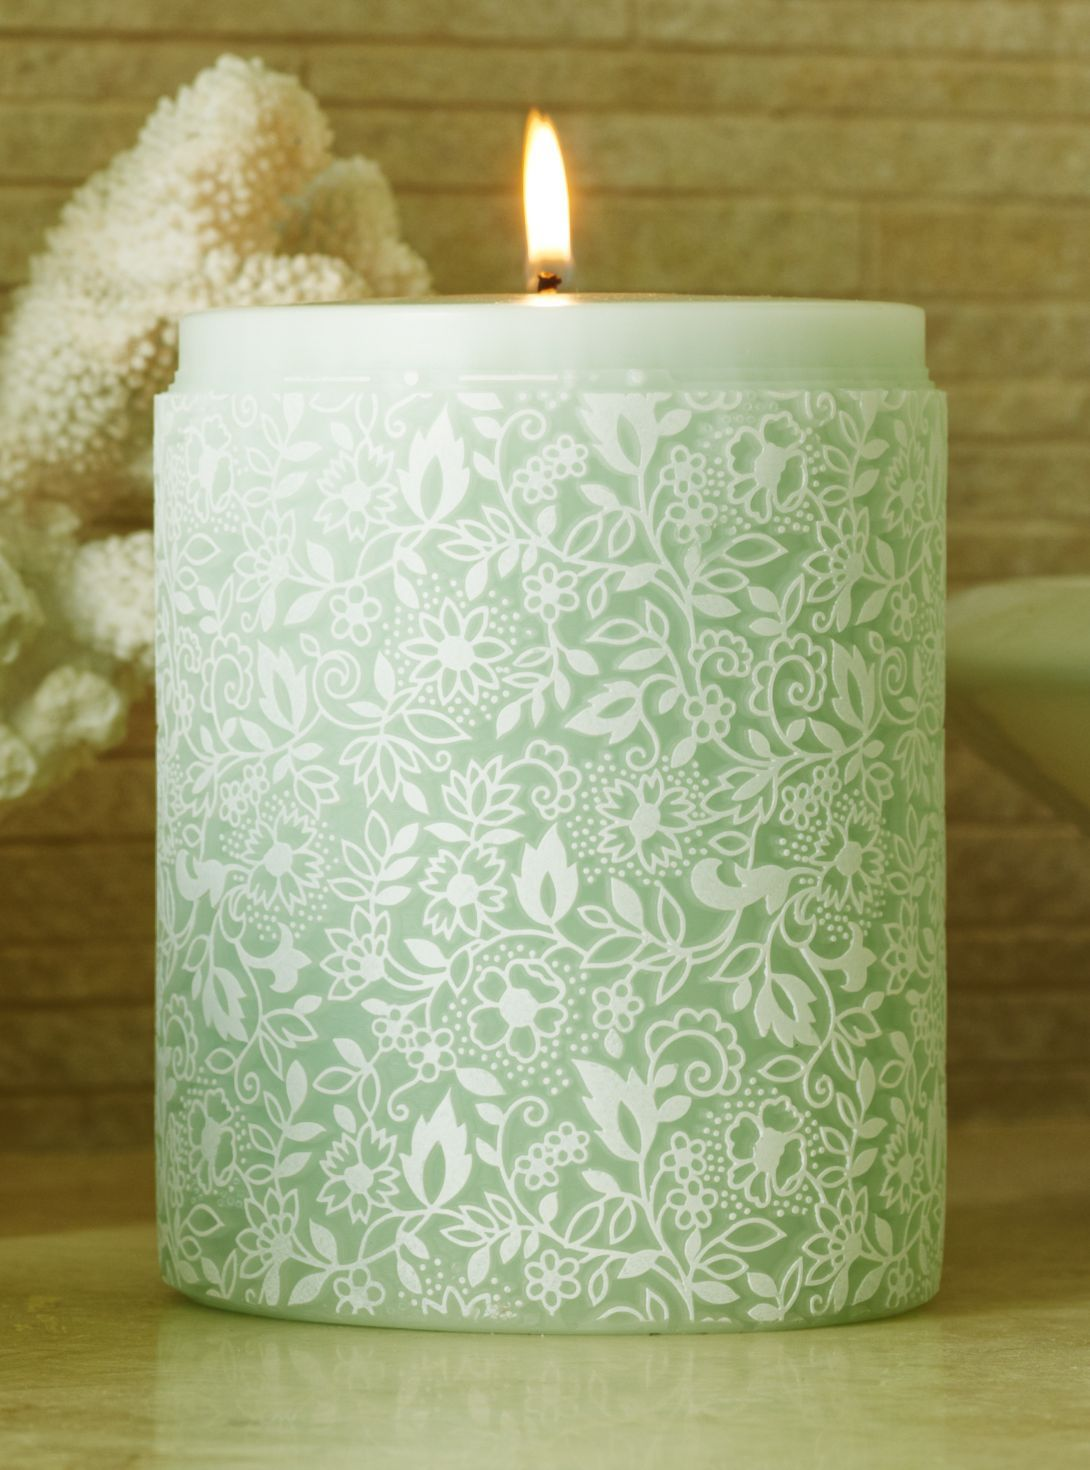 Parable Clovelly Froth on Duck Egg handcrafted candle - www.parabledesigns.co.uk